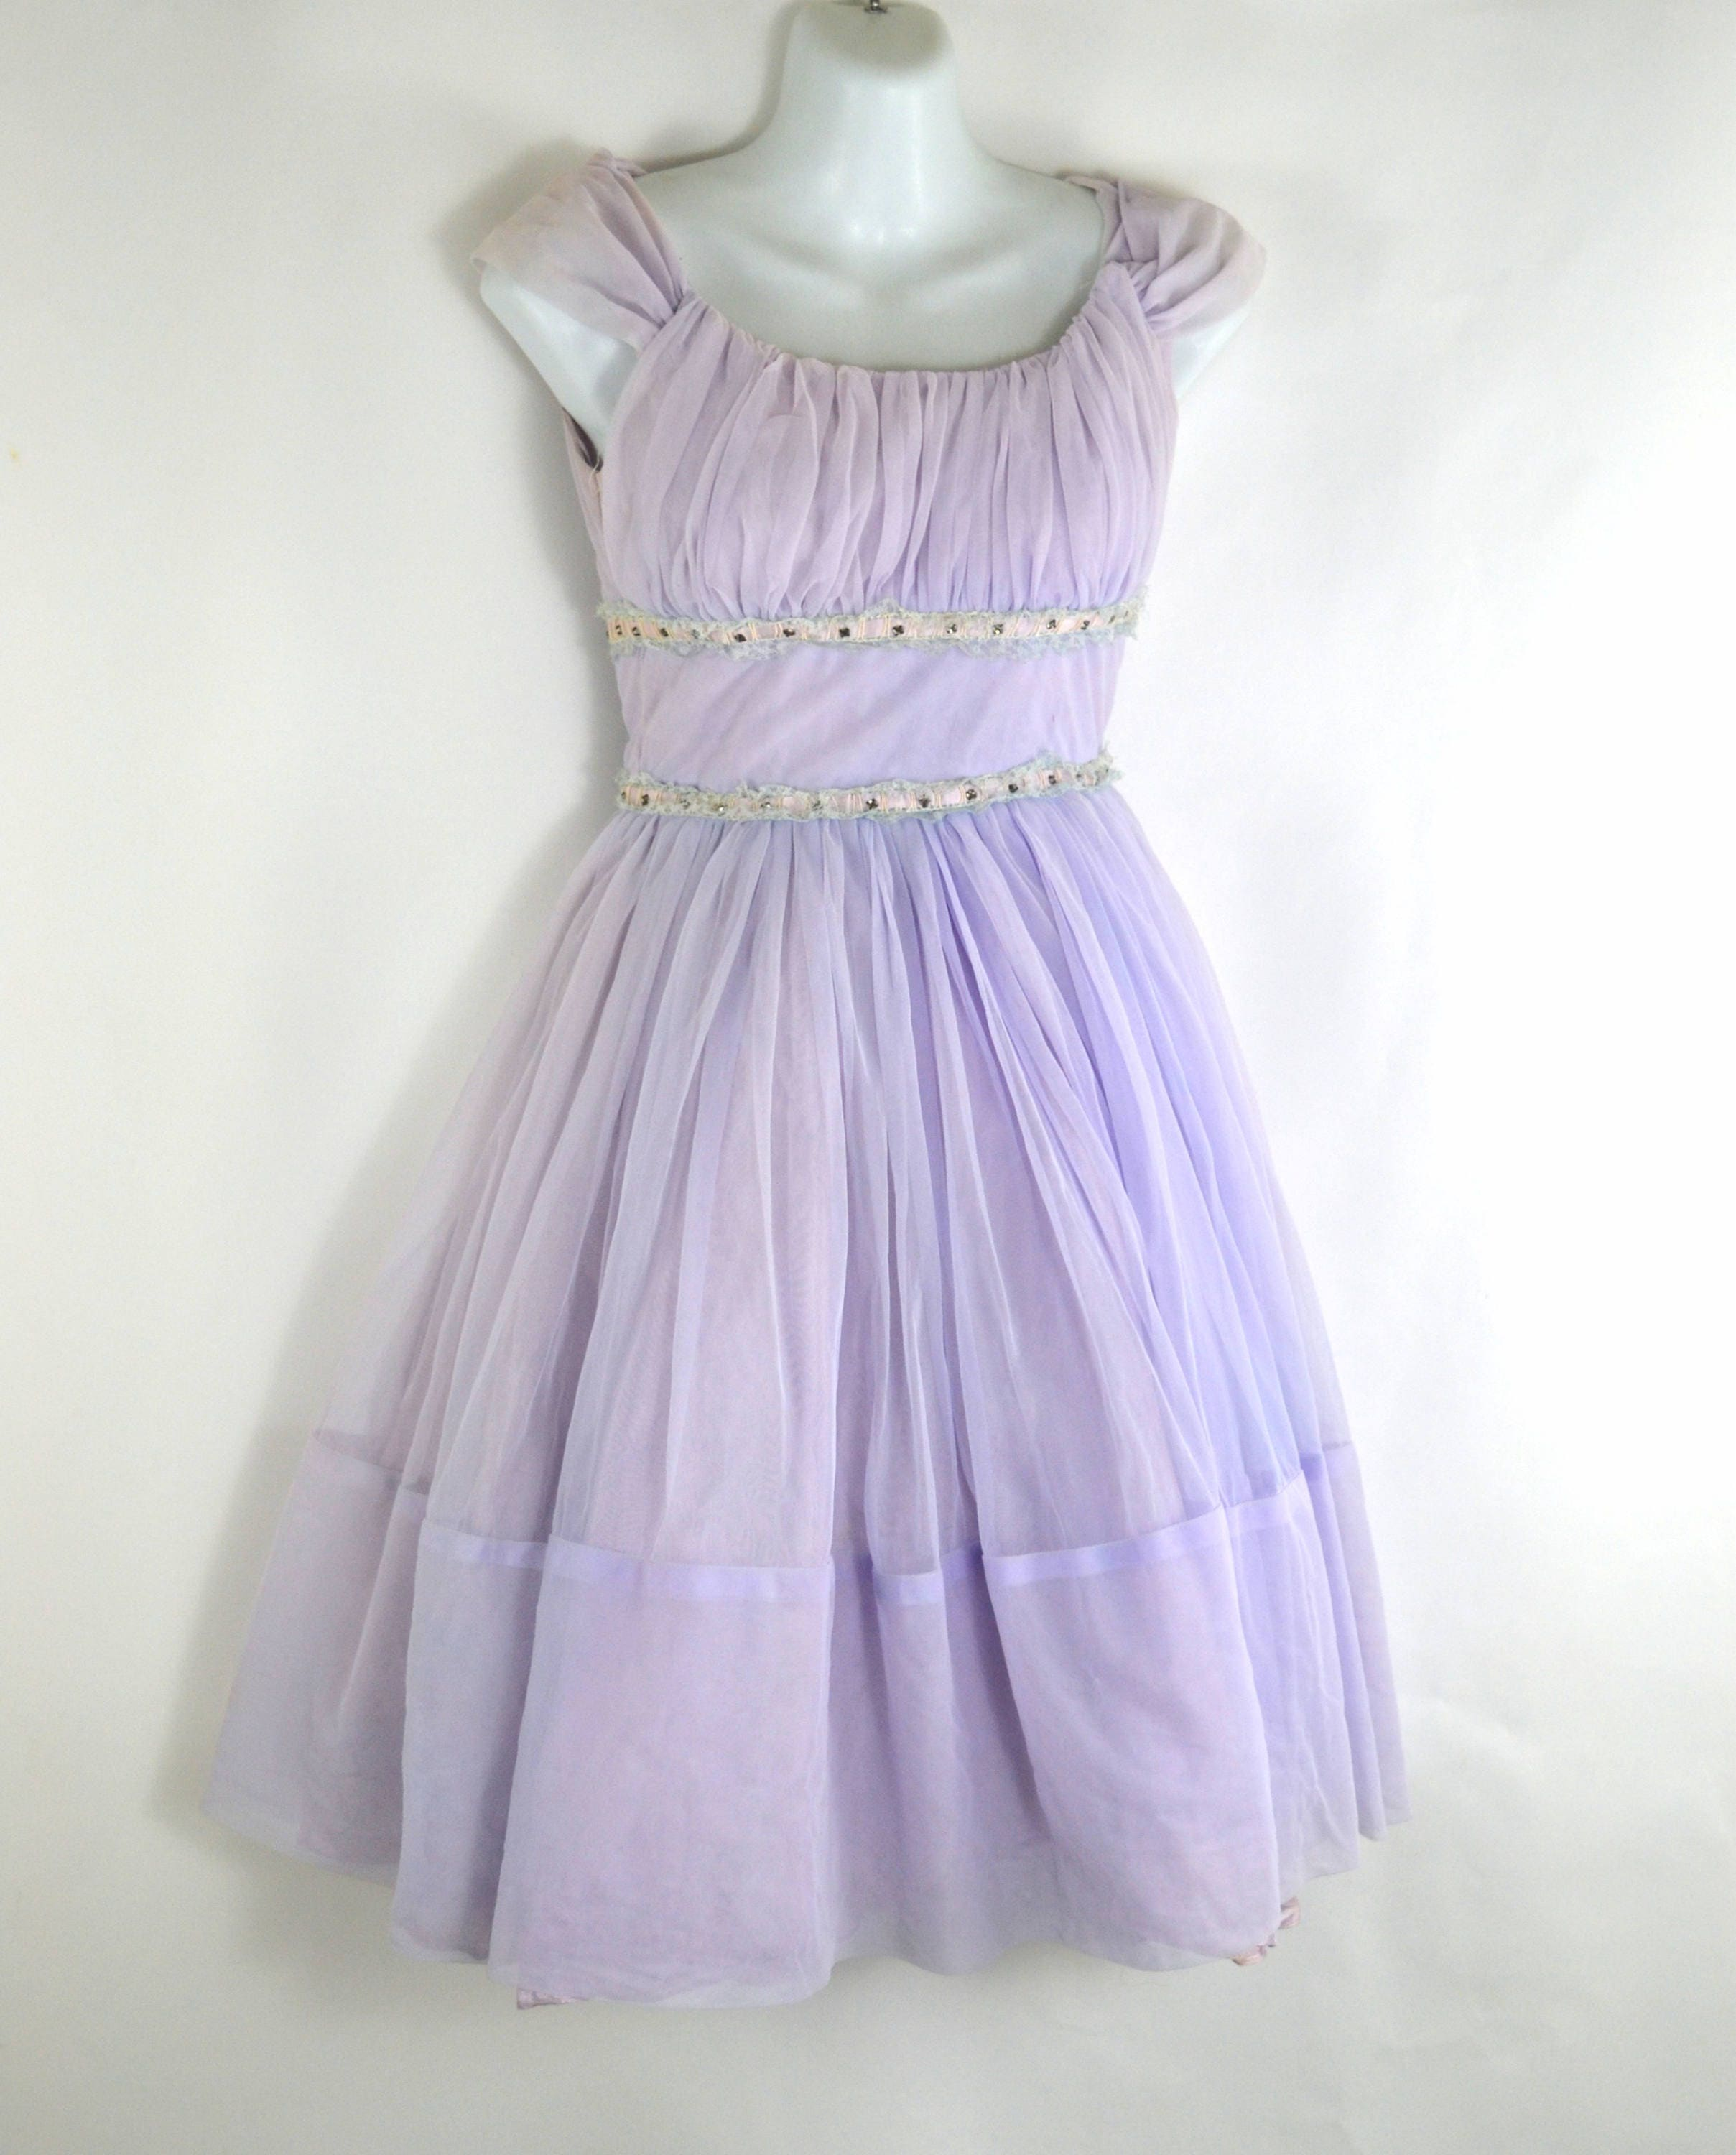 Vintage Scarf Styles -1920s to 1960s 1950S Lavender Sleeveless Chiffon Full Skirt Party Dress, Clear Rhinestone Accent $110.00 AT vintagedancer.com